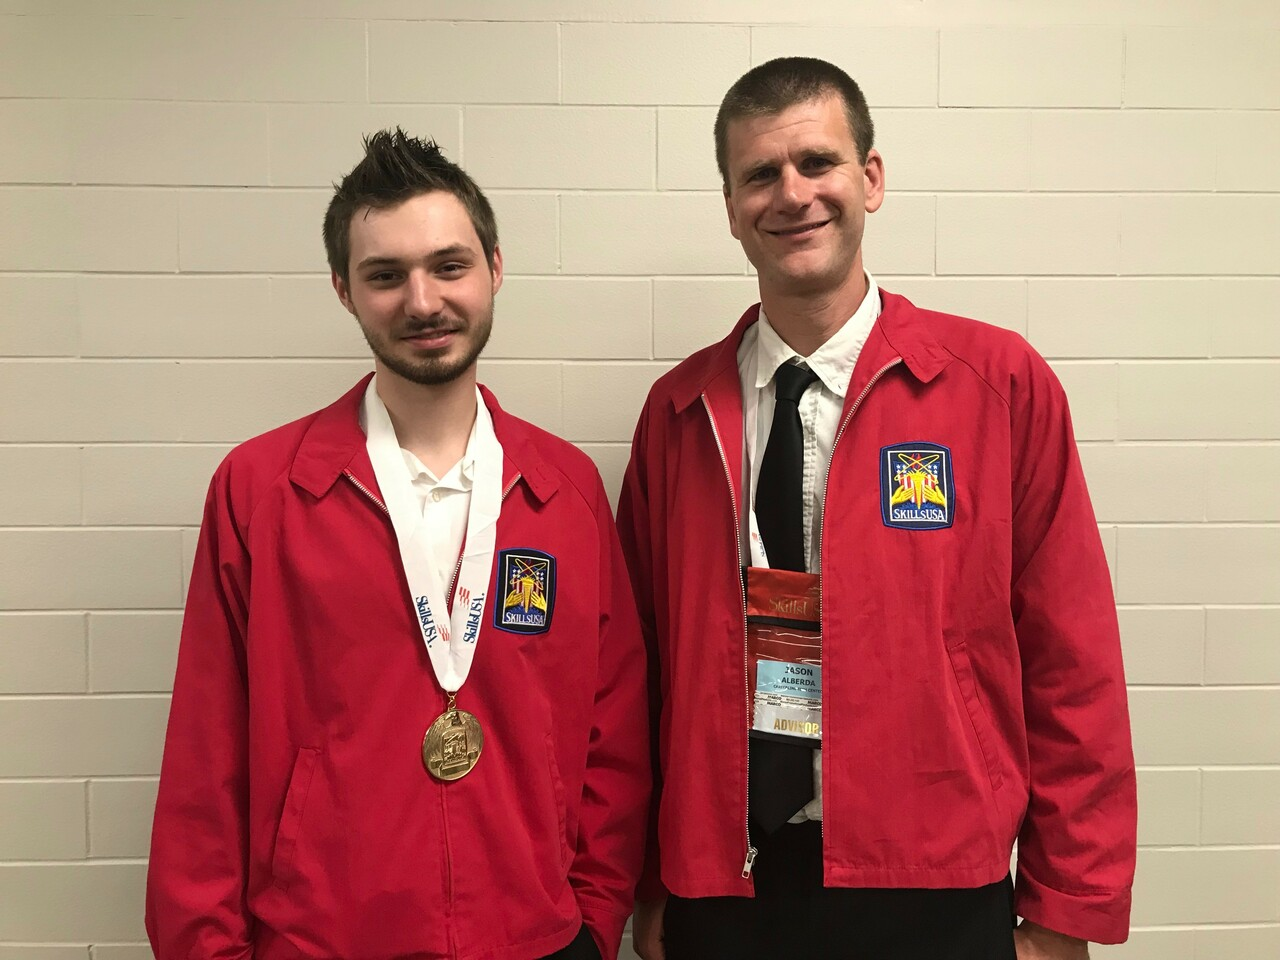 devries and teacher at competition with medal